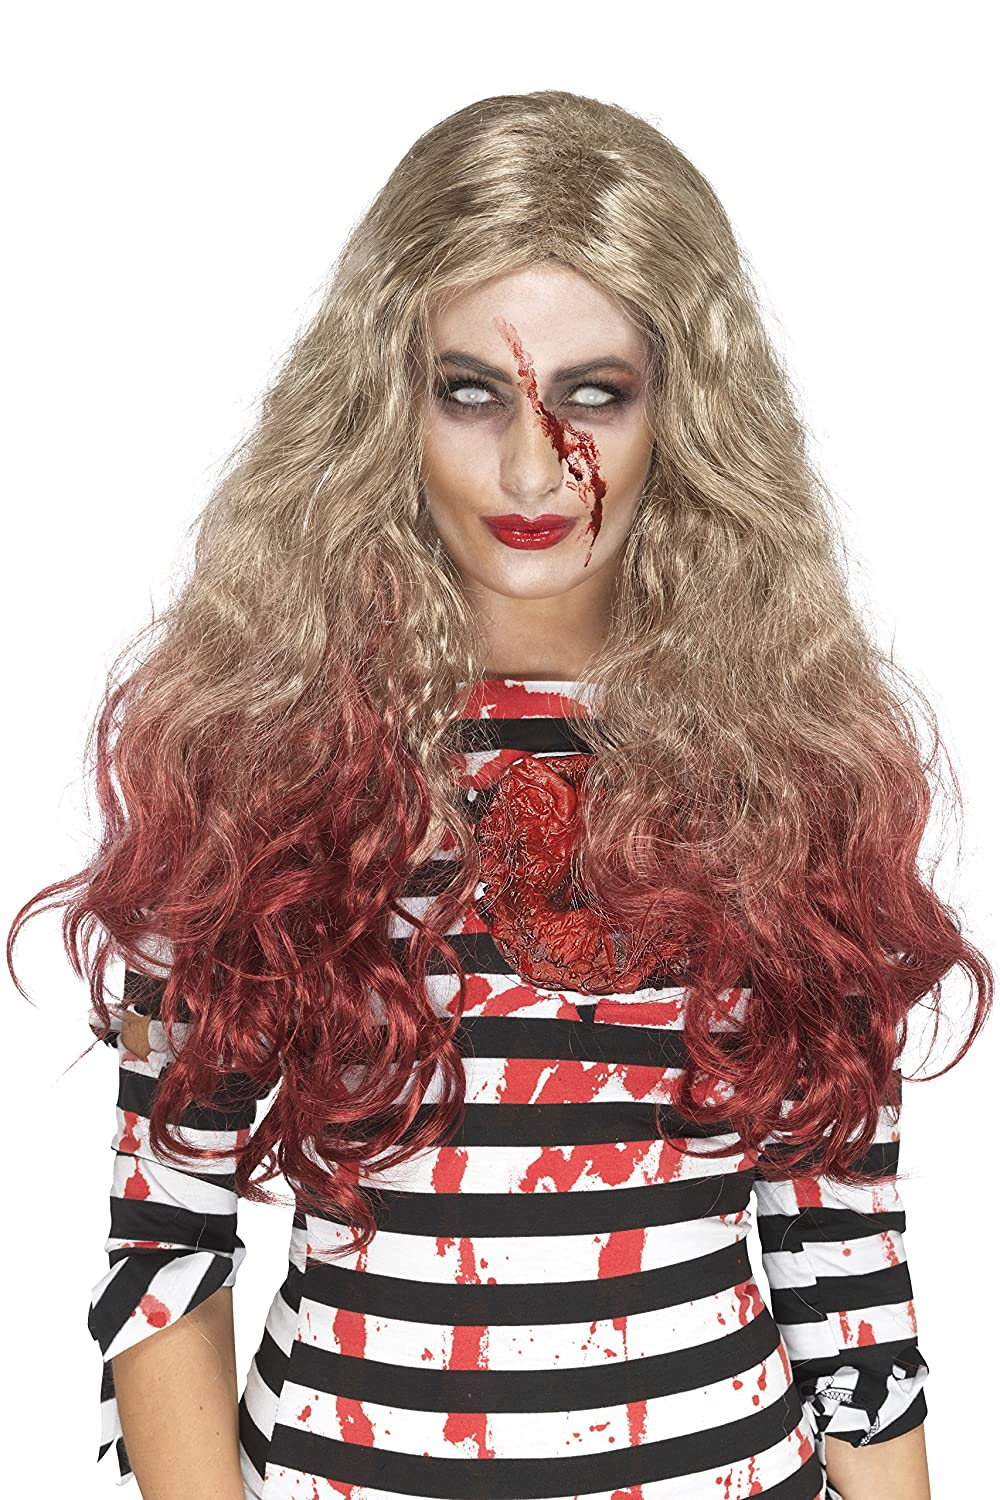 Smiffys Women's Deluxe Zombie Blood Drip Wig, Blonde/Red, One Size Smiffy's Import 46855